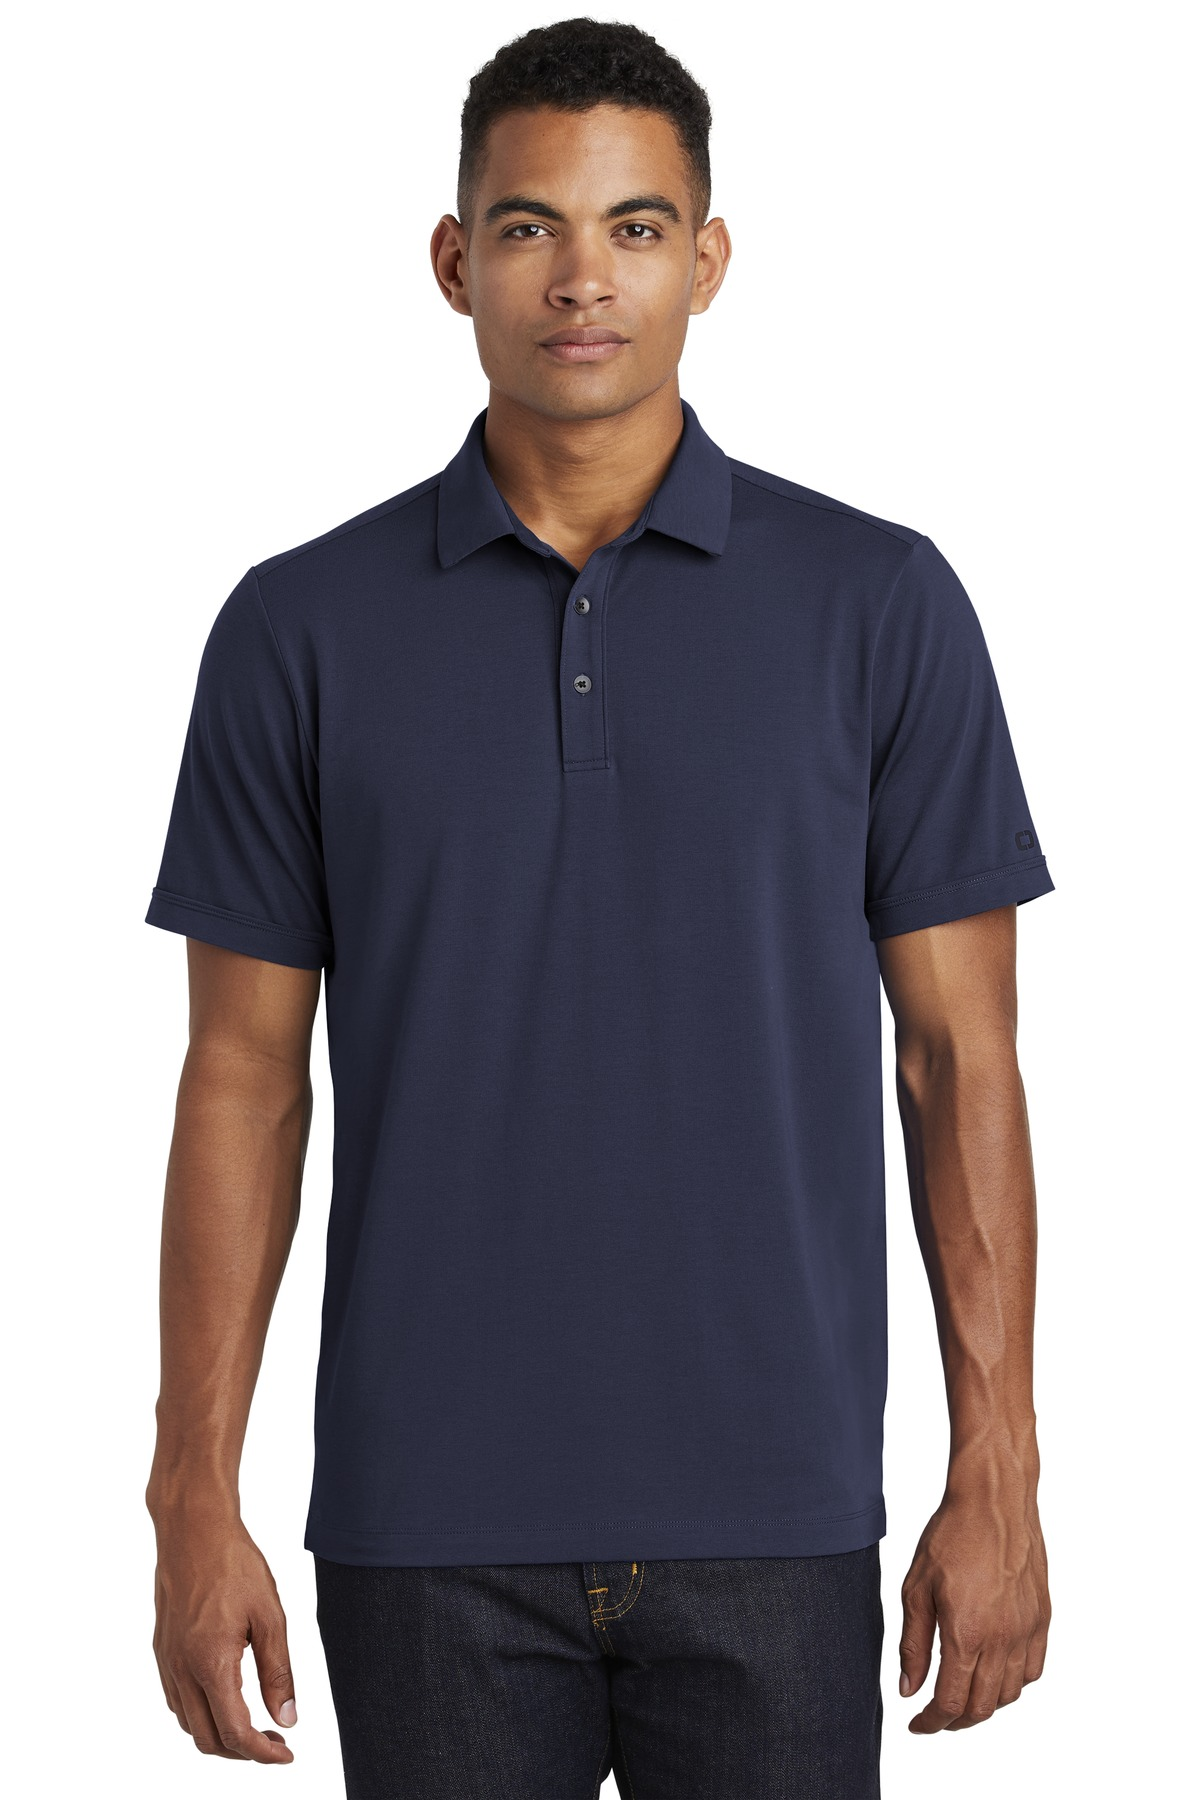 OGIO  ®  Limit Polo. OG138 - Navy